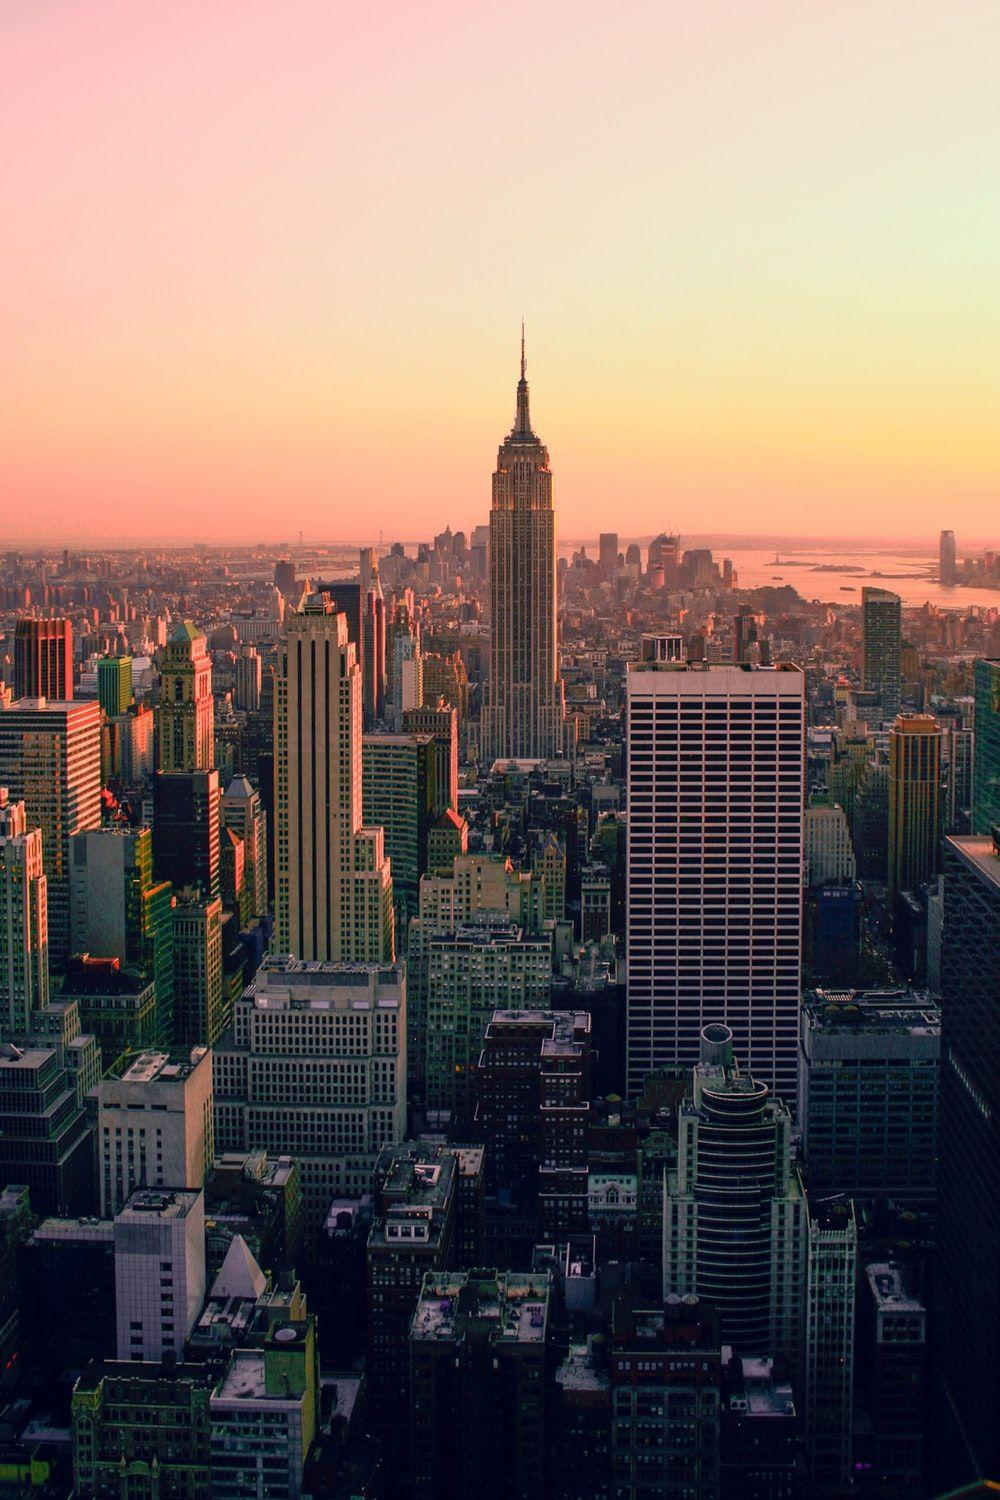 New York Aesthetic Wallpapers Top Free New York Aesthetic Backgrounds Wallpaperaccess